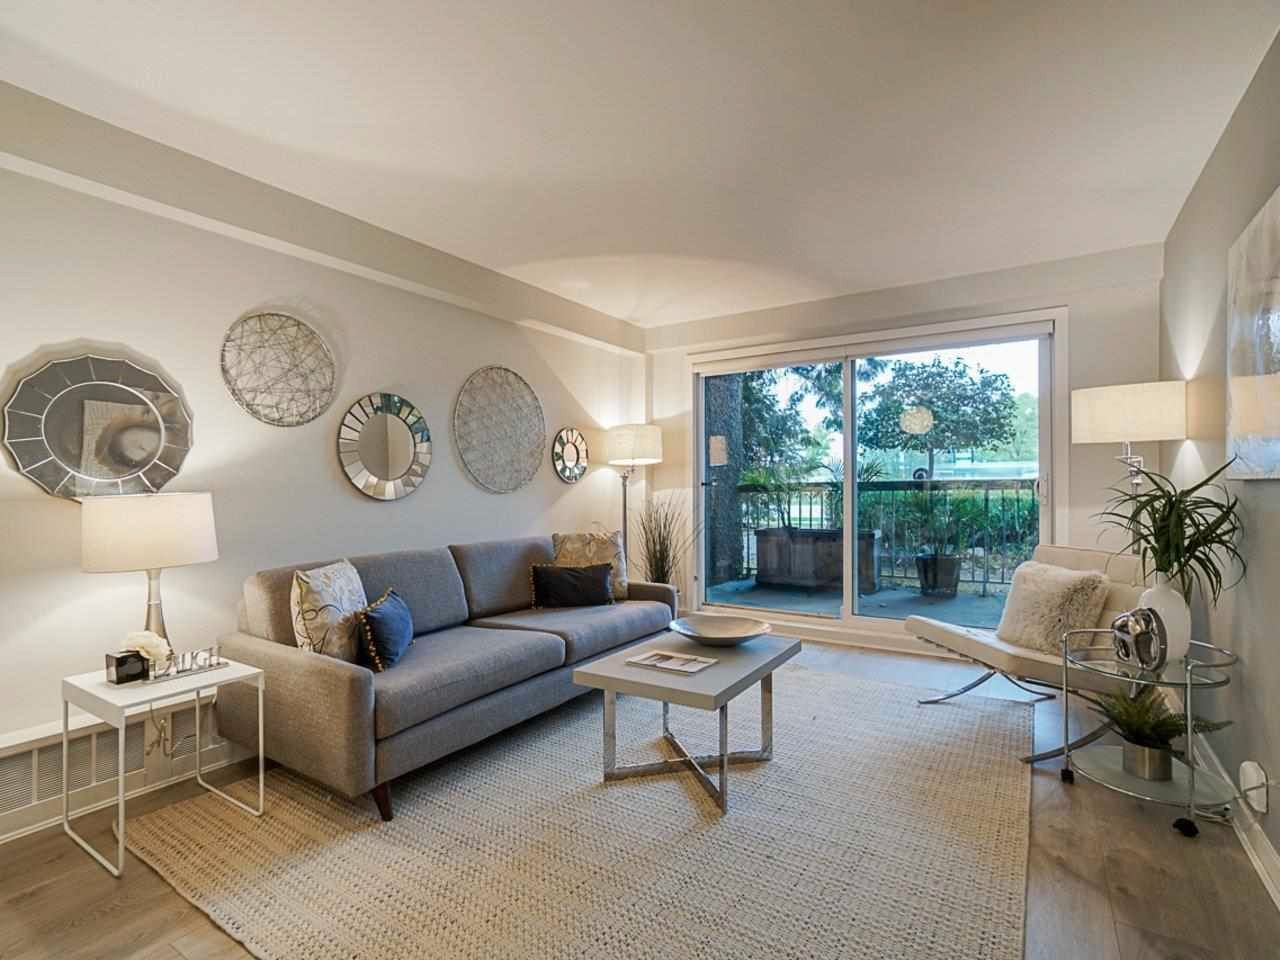 """Main Photo: 101 756 GREAT NORTHERN Way in Vancouver: Mount Pleasant VE Condo for sale in """"Pacific Terraces"""" (Vancouver East)  : MLS®# R2577587"""